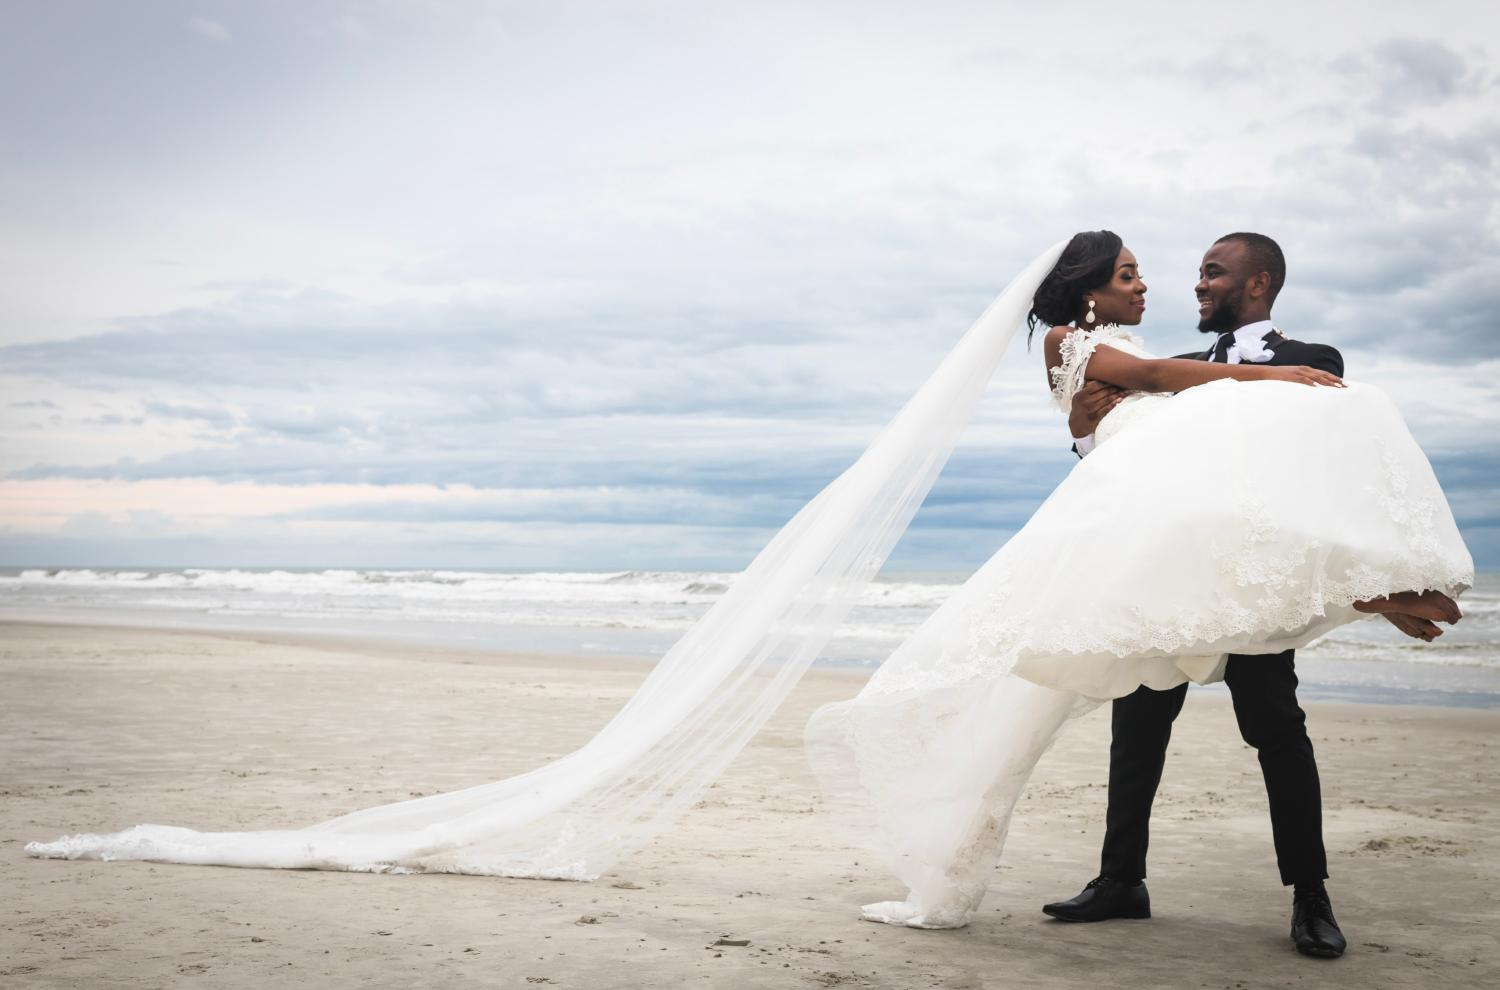 When Couples Decide To Marry, Advisors Offer Congrats And Some Financial Tips Thumbnail